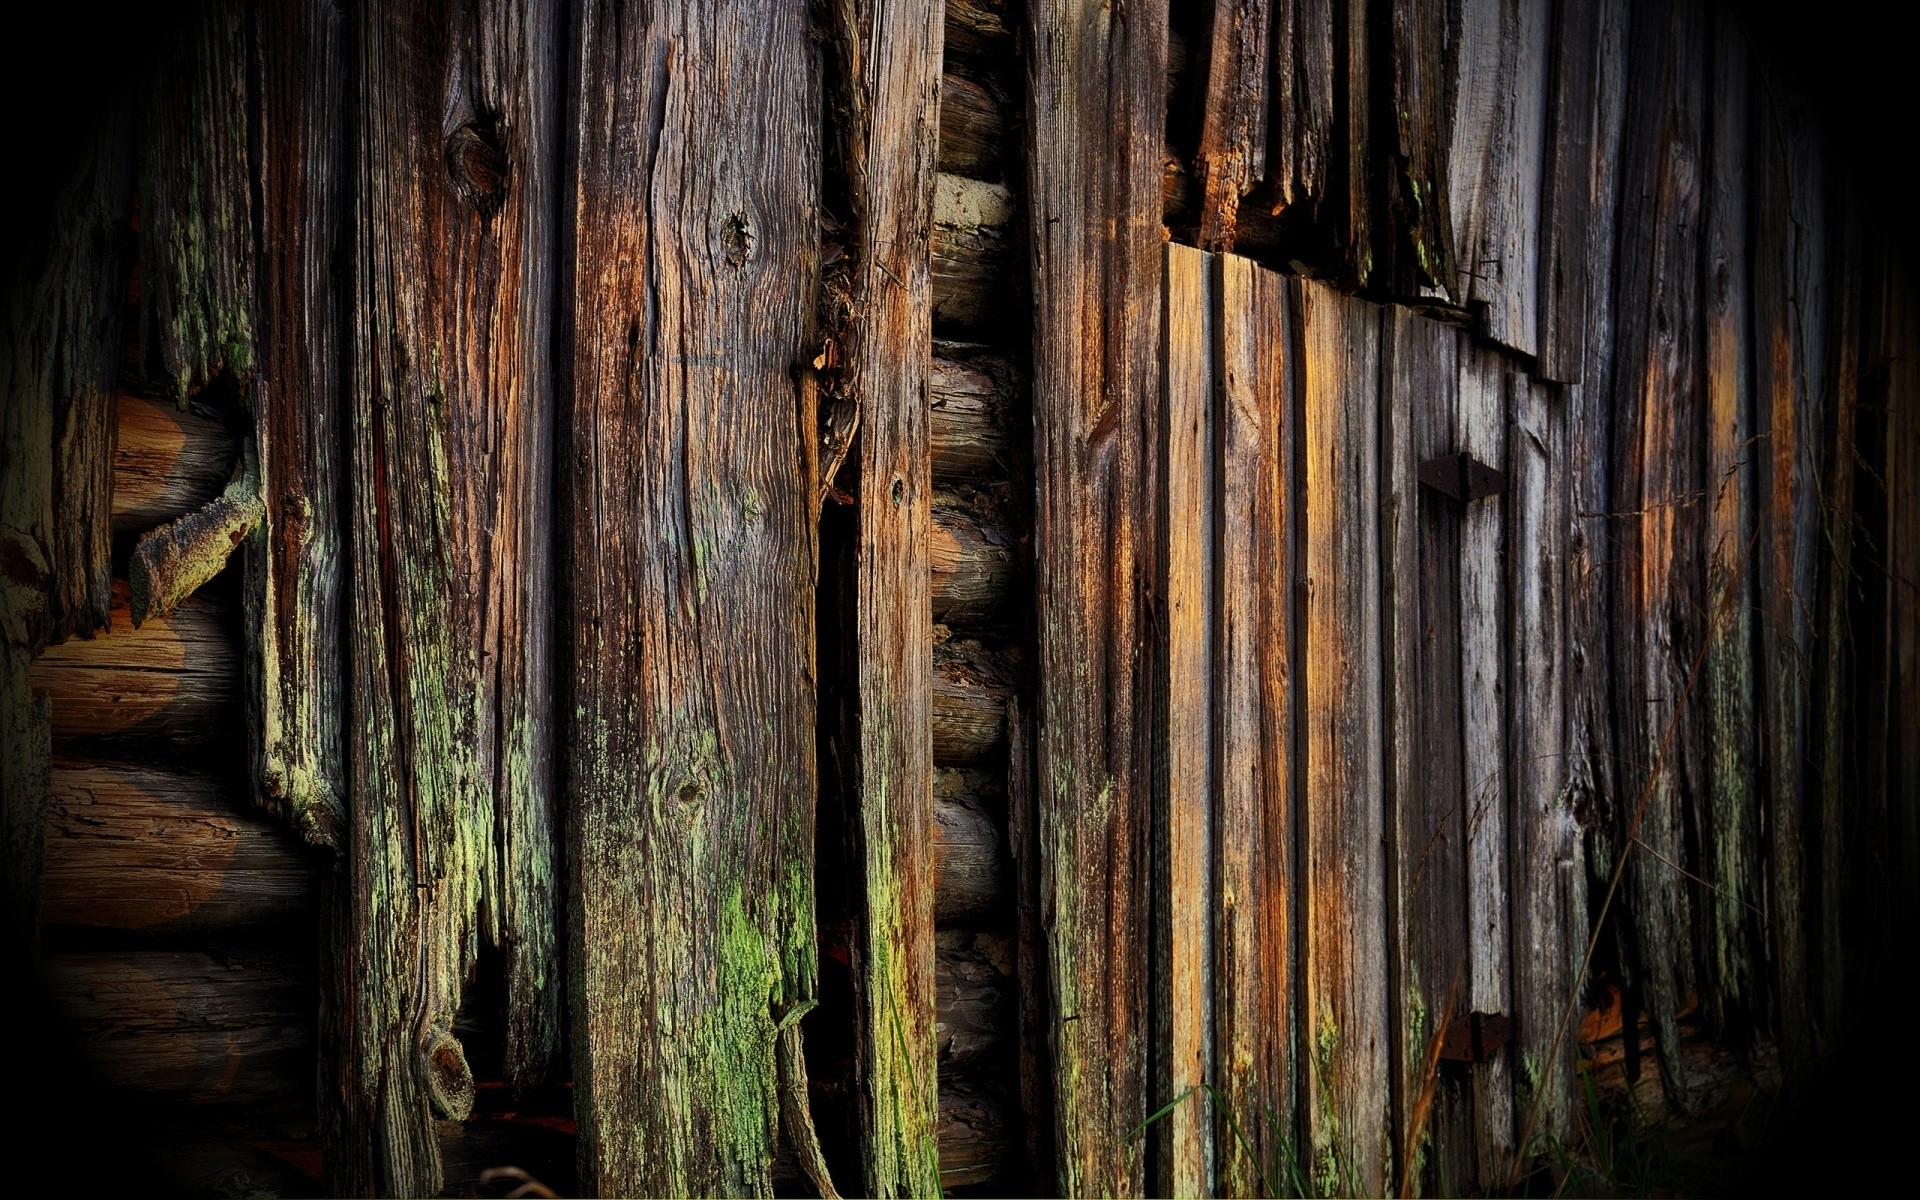 1920x1200 Wall Ruin Decay Rustic Wood Abstract Wallpaper Background